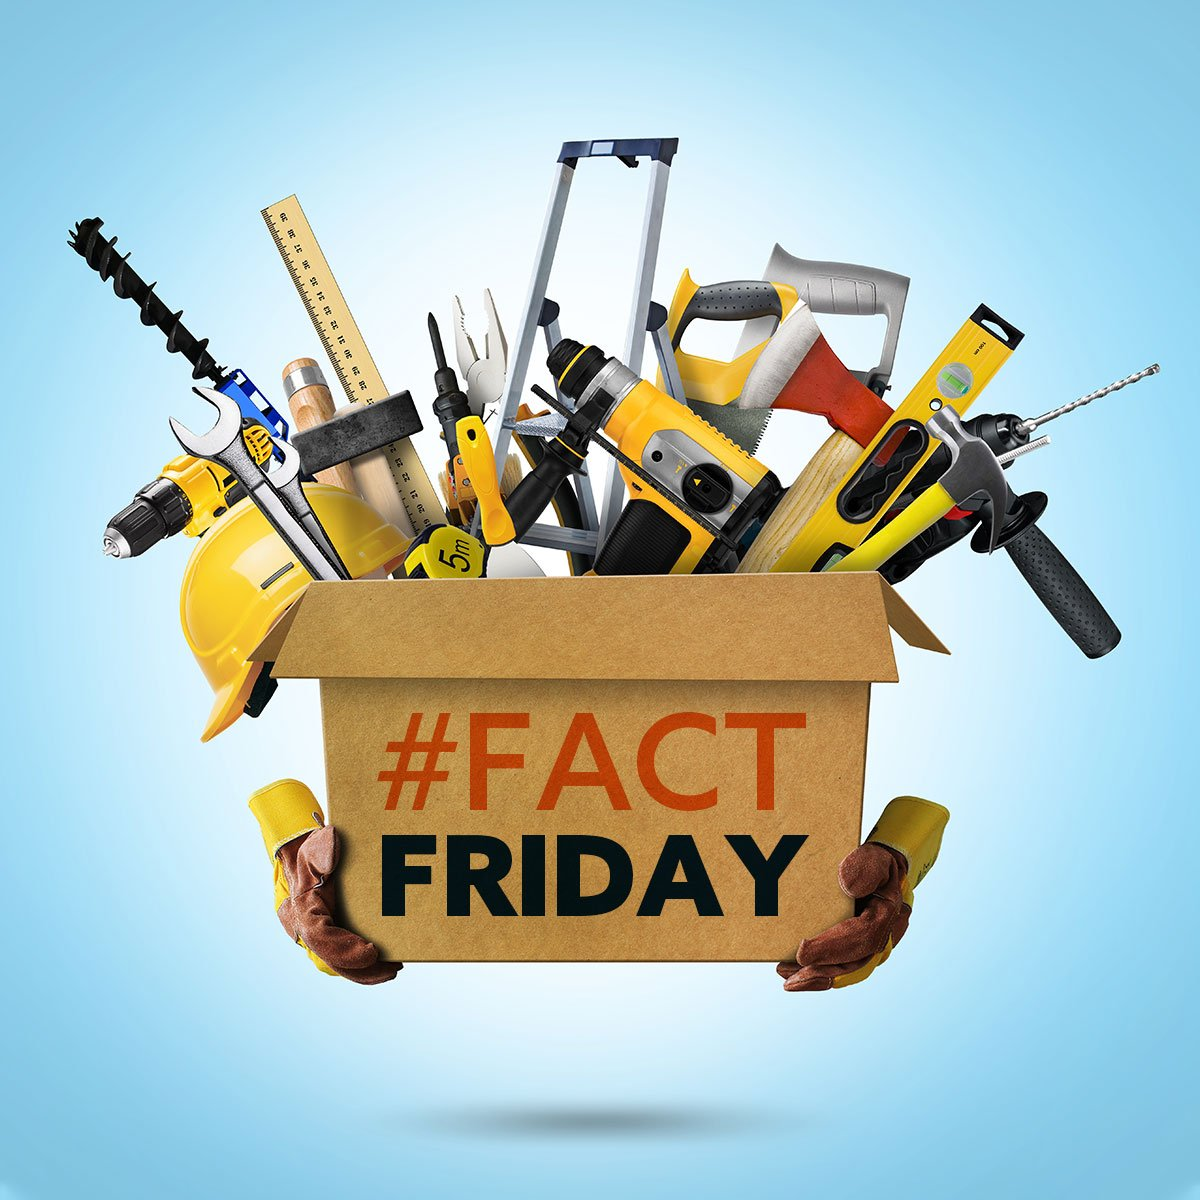 John's Service and Sales's photo on #FactFriday